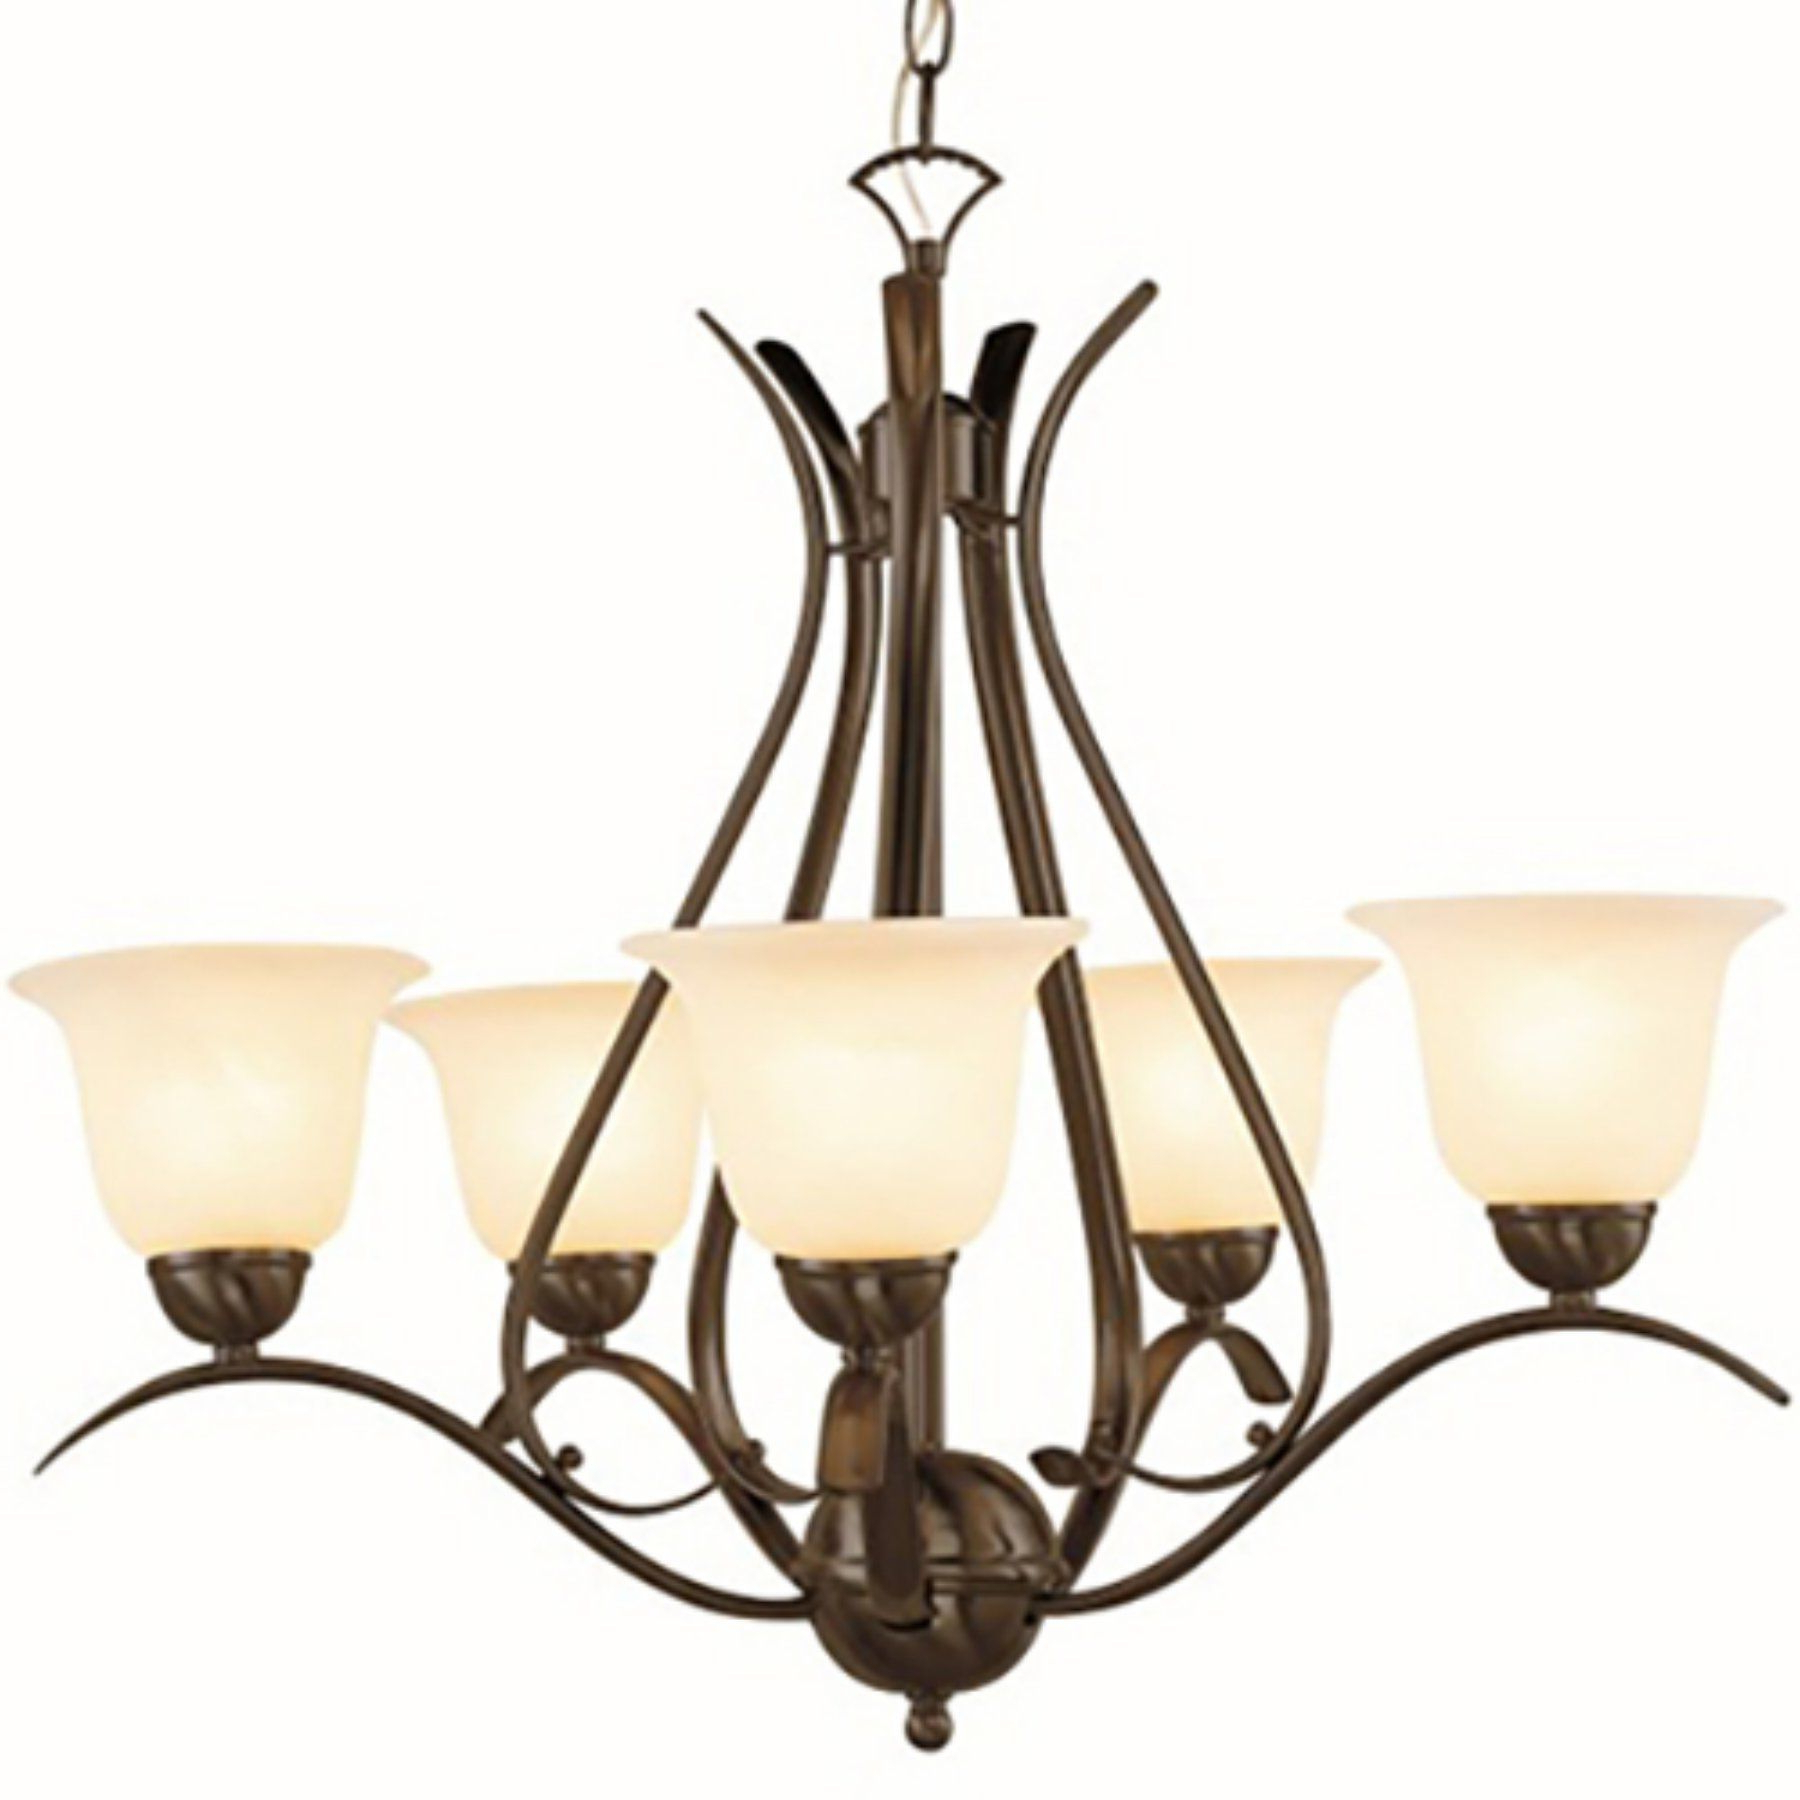 Trans Globe Lighting Aspen Pl 9285 Chandelier – Pl 9285 Rob Pertaining To 2019 Hayden 5 Light Shaded Chandeliers (View 15 of 20)